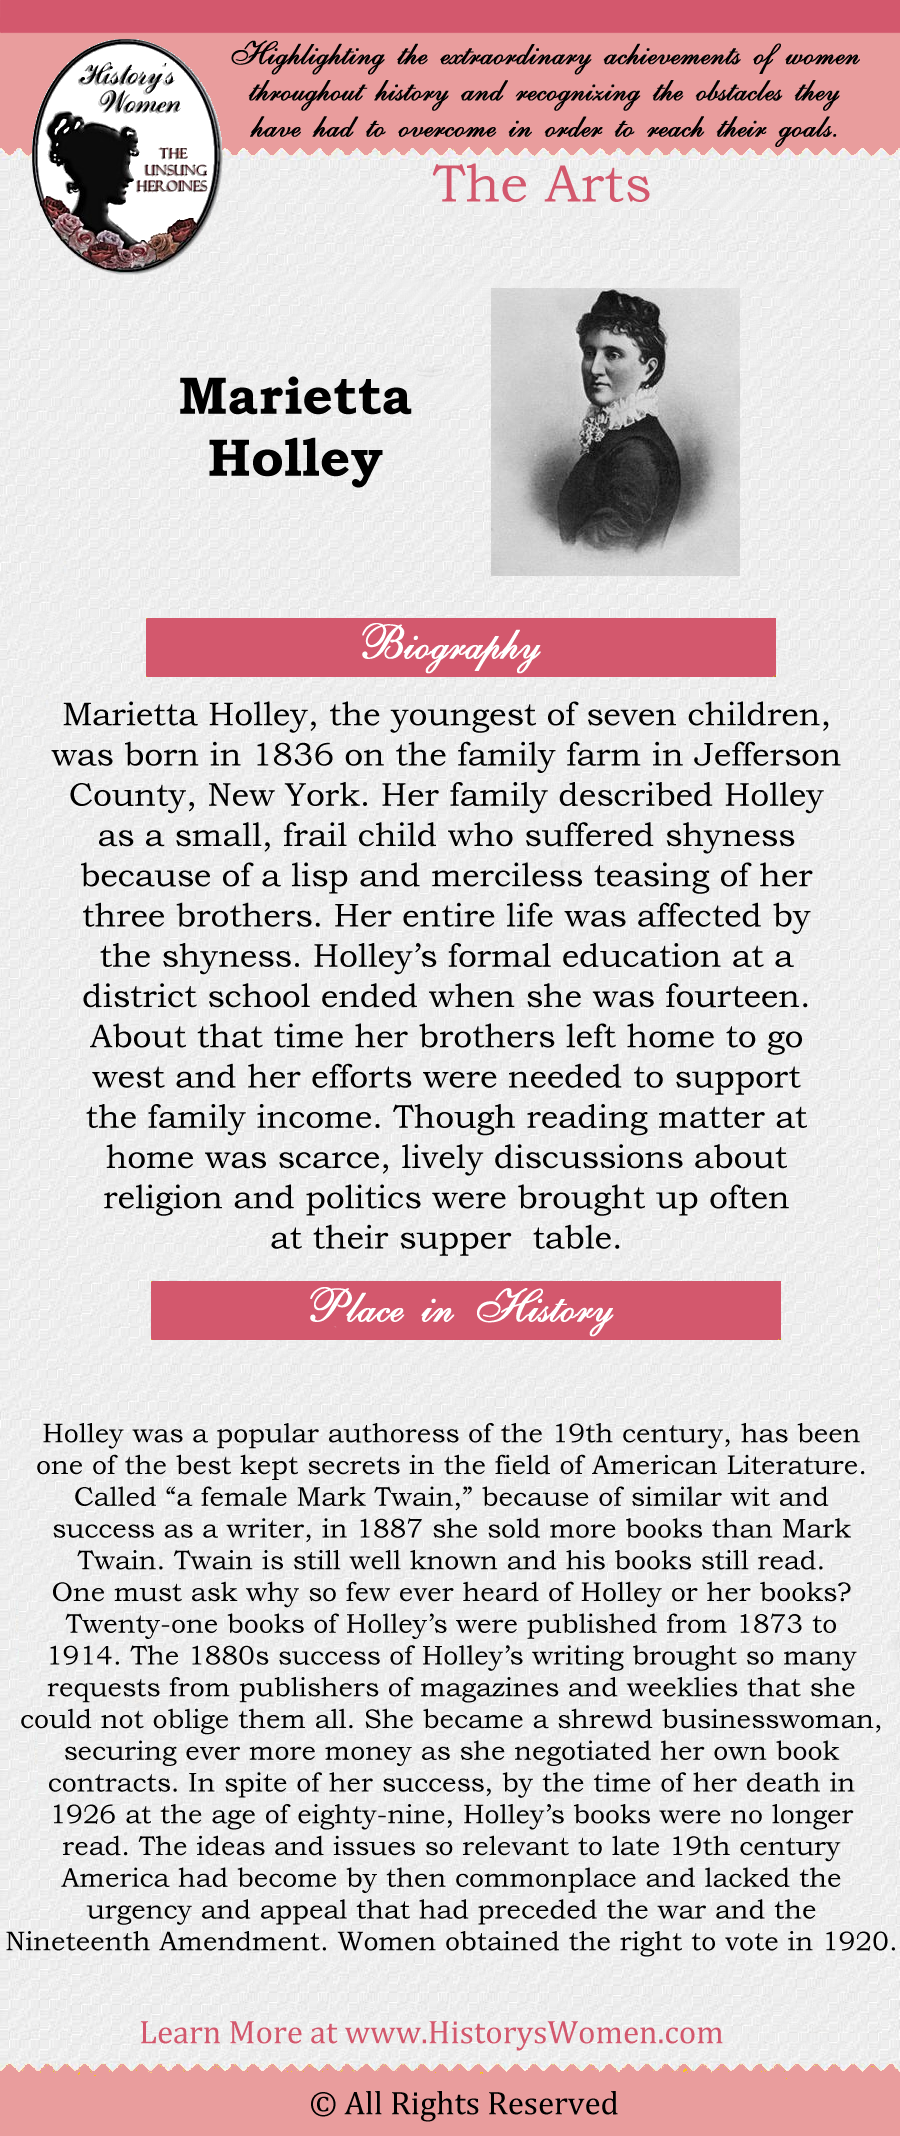 Complete article about Marietta Holley found at HistorysWomen.com!